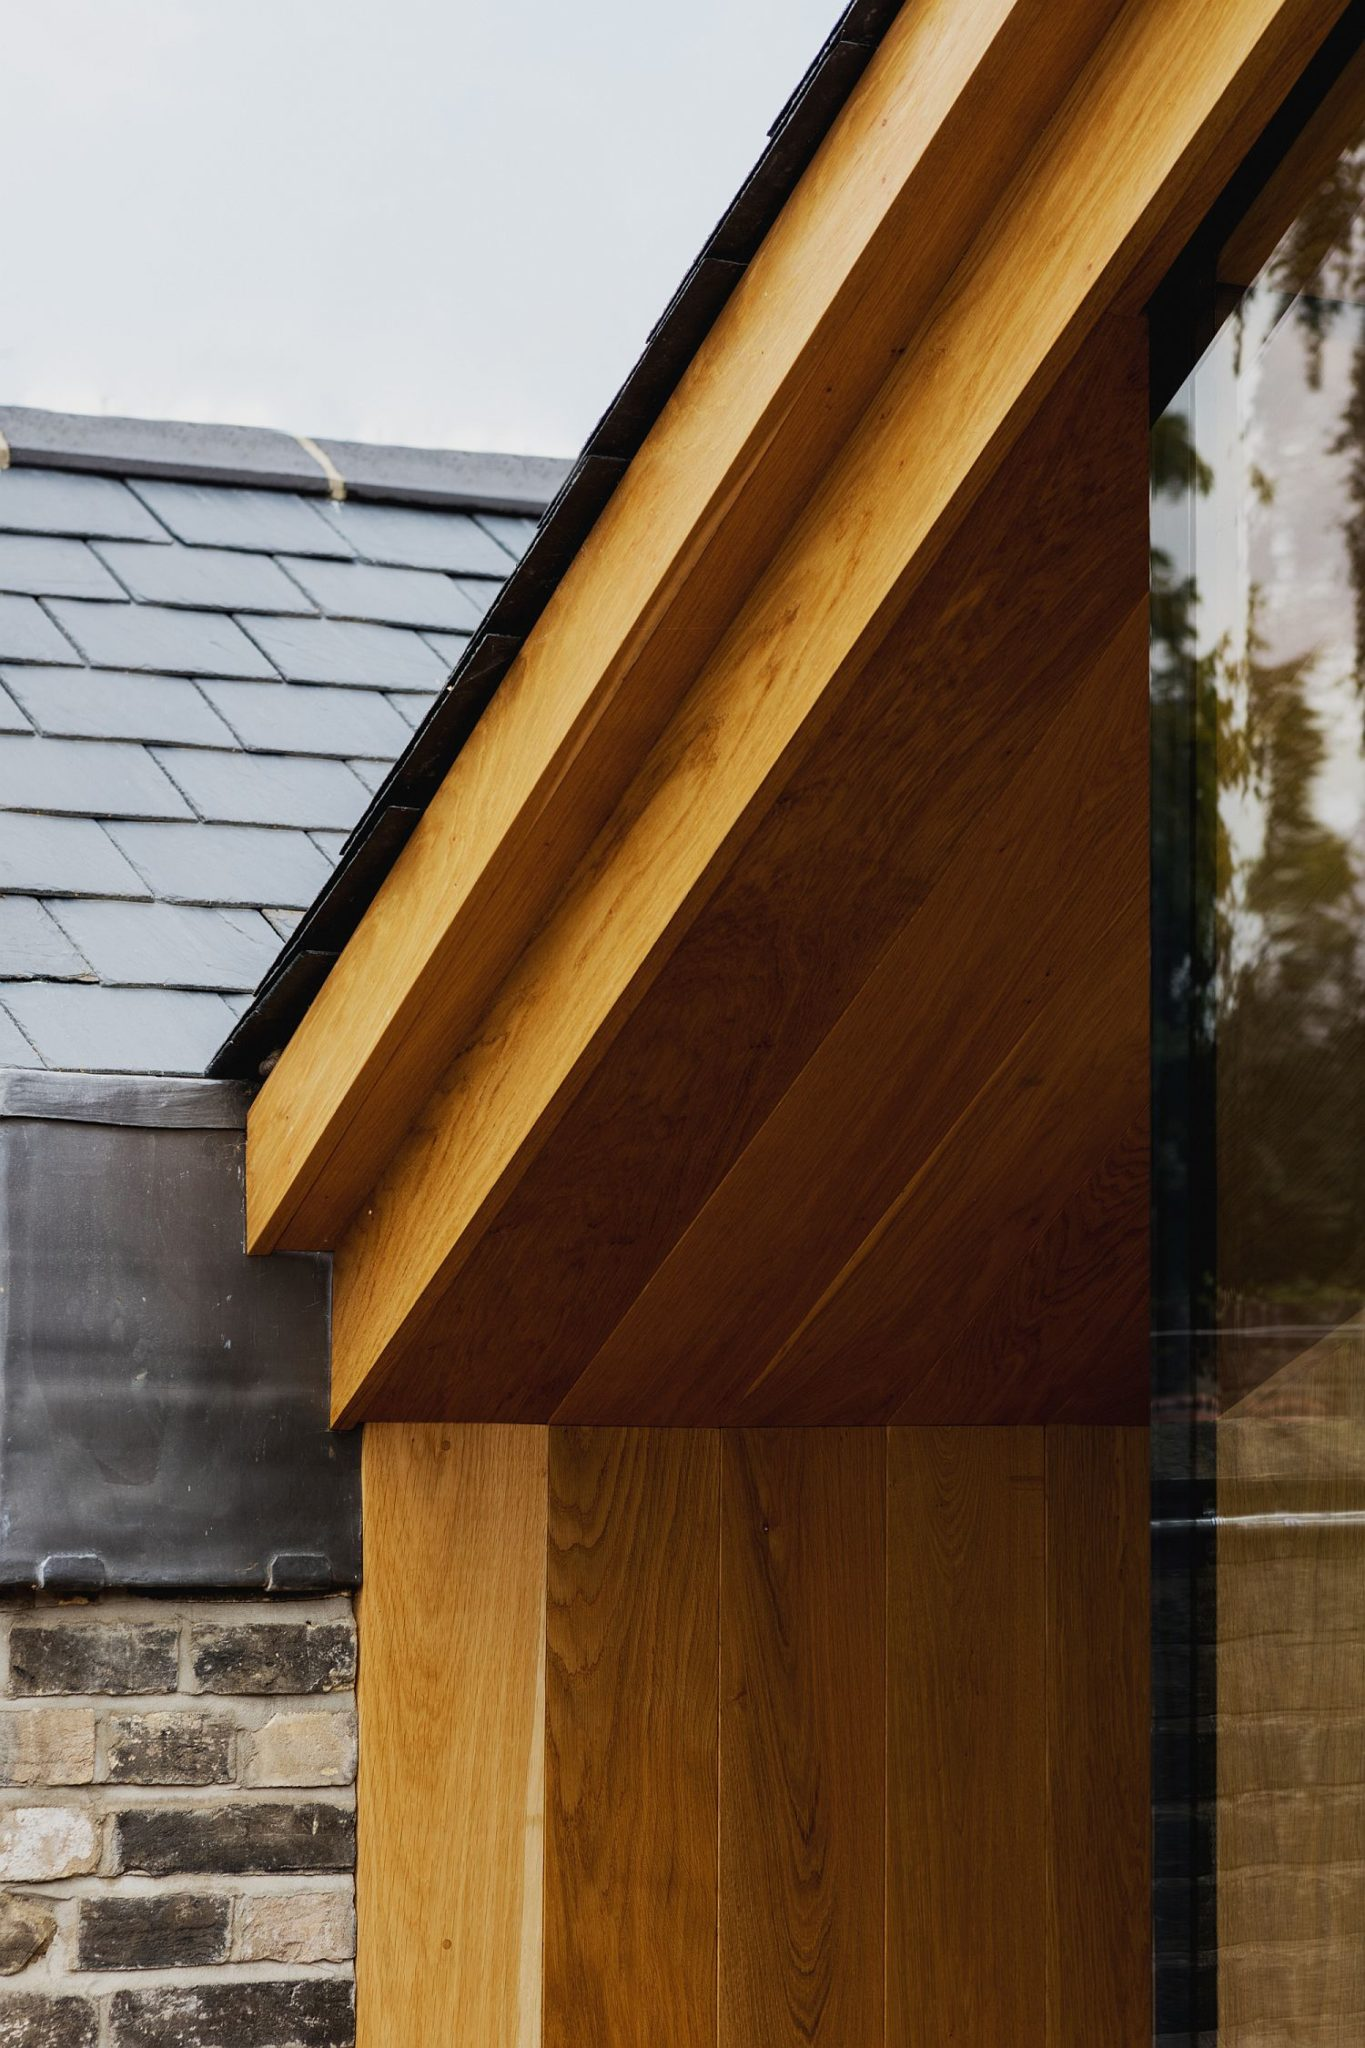 Lovely use of oak creates a visually light and contemporary extension